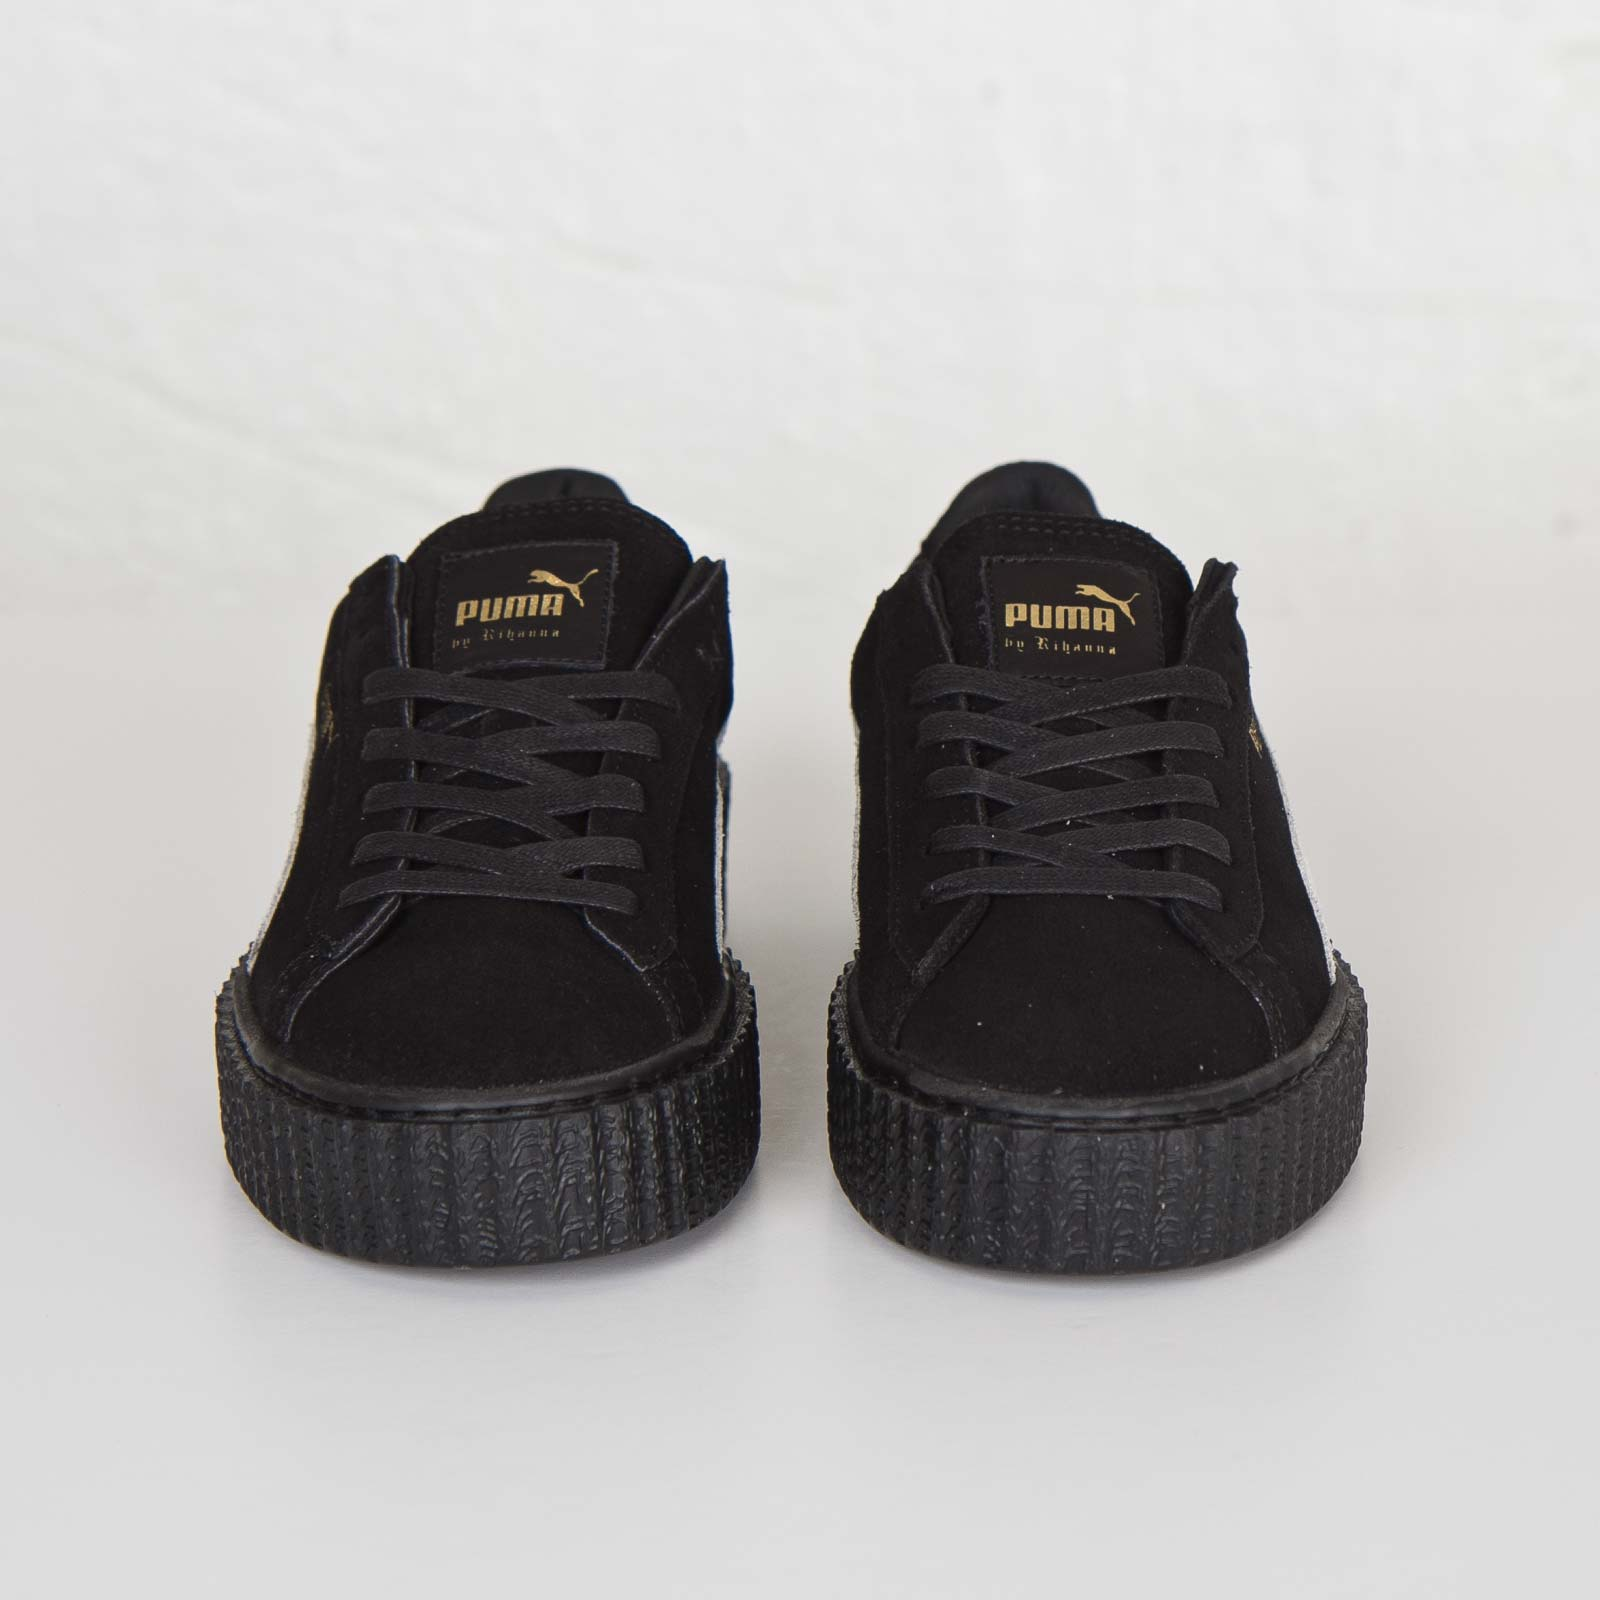 573a1a62ab9 Puma Suede Creepers - 361005-01 - Sneakersnstuff